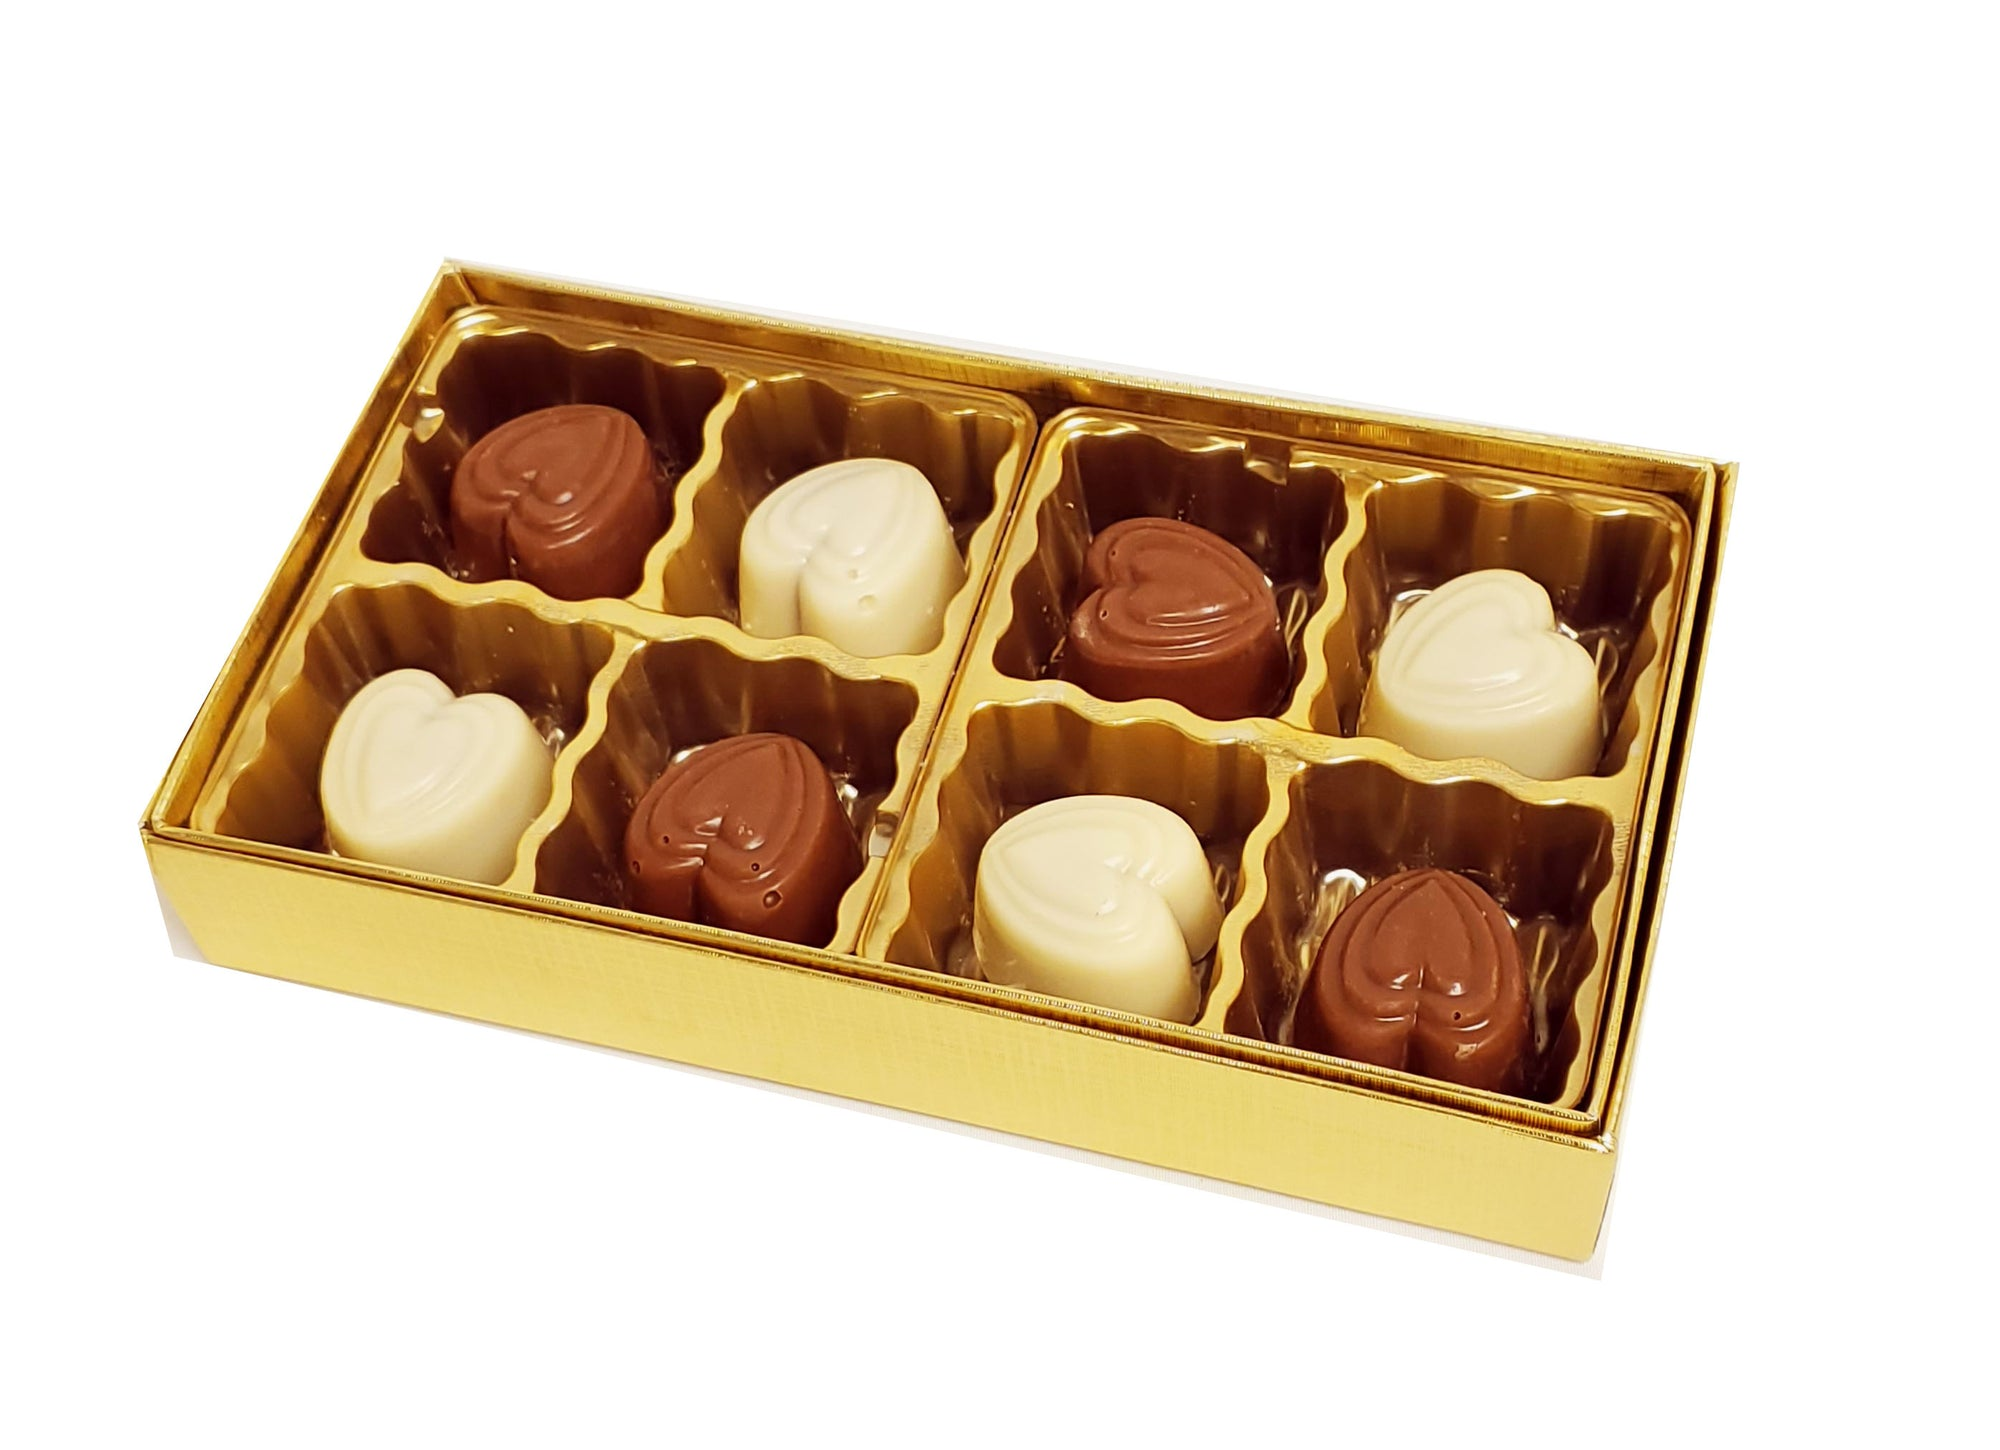 Gold Heart Chocolate Gift Box 8pc Pareve